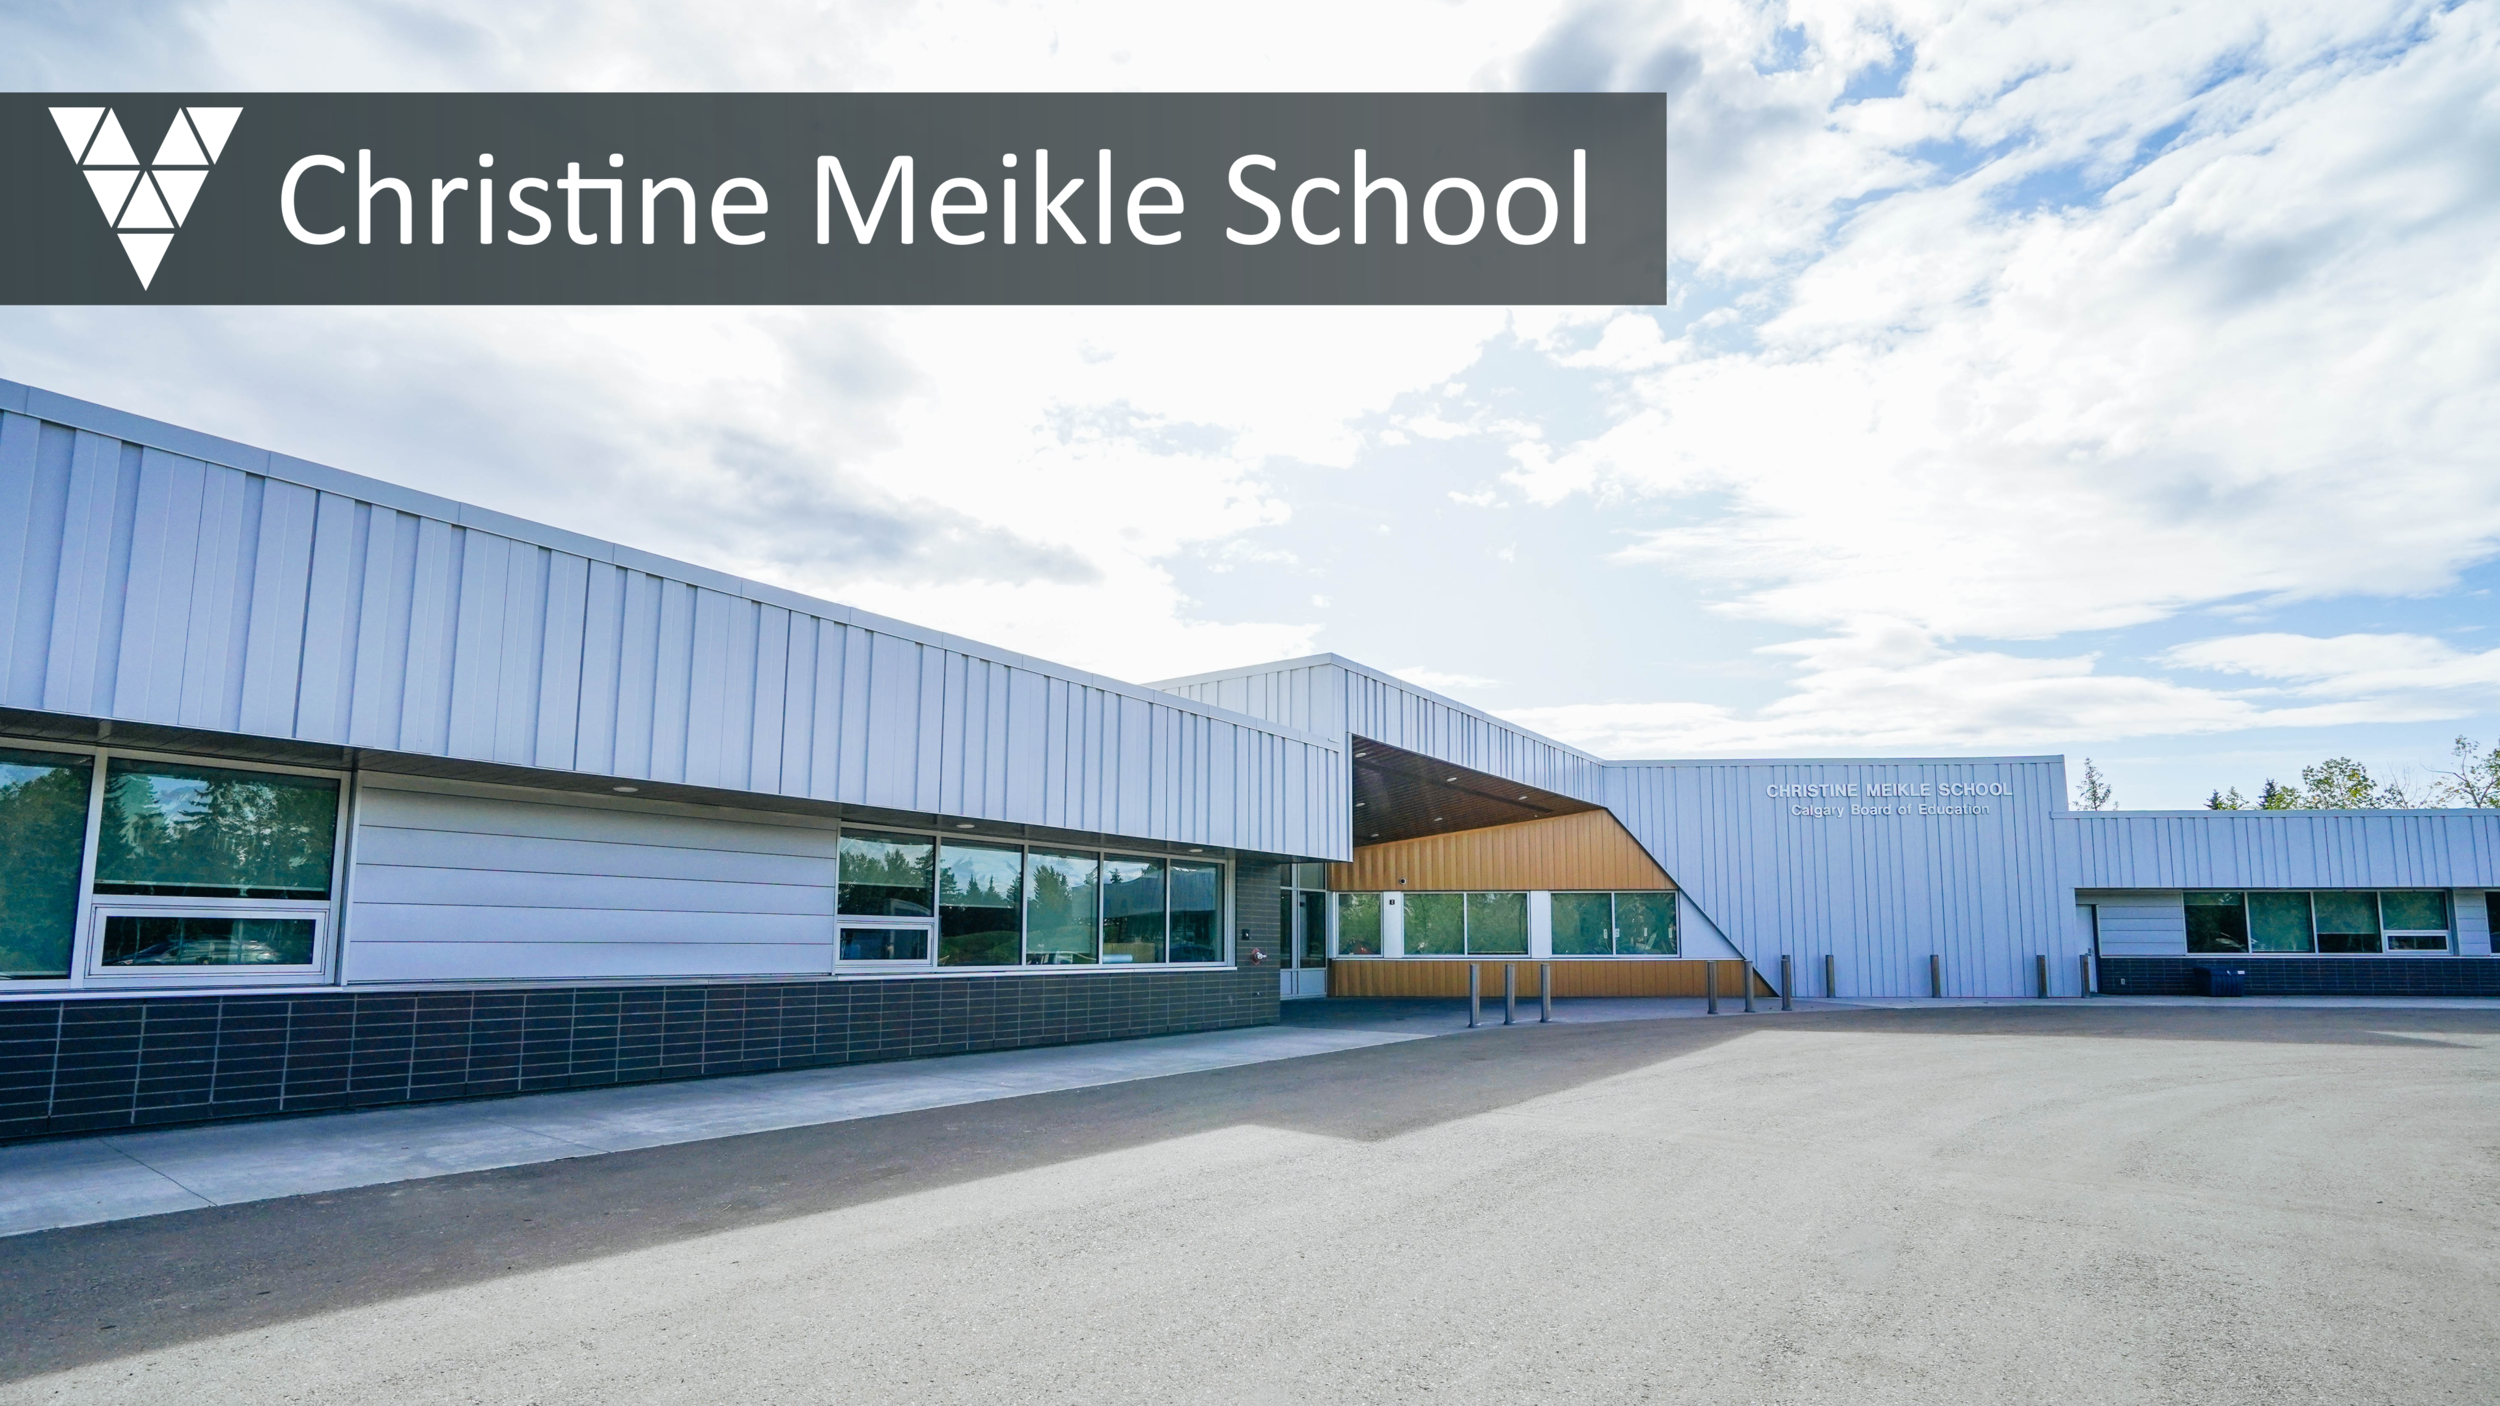 Christine Meikle School